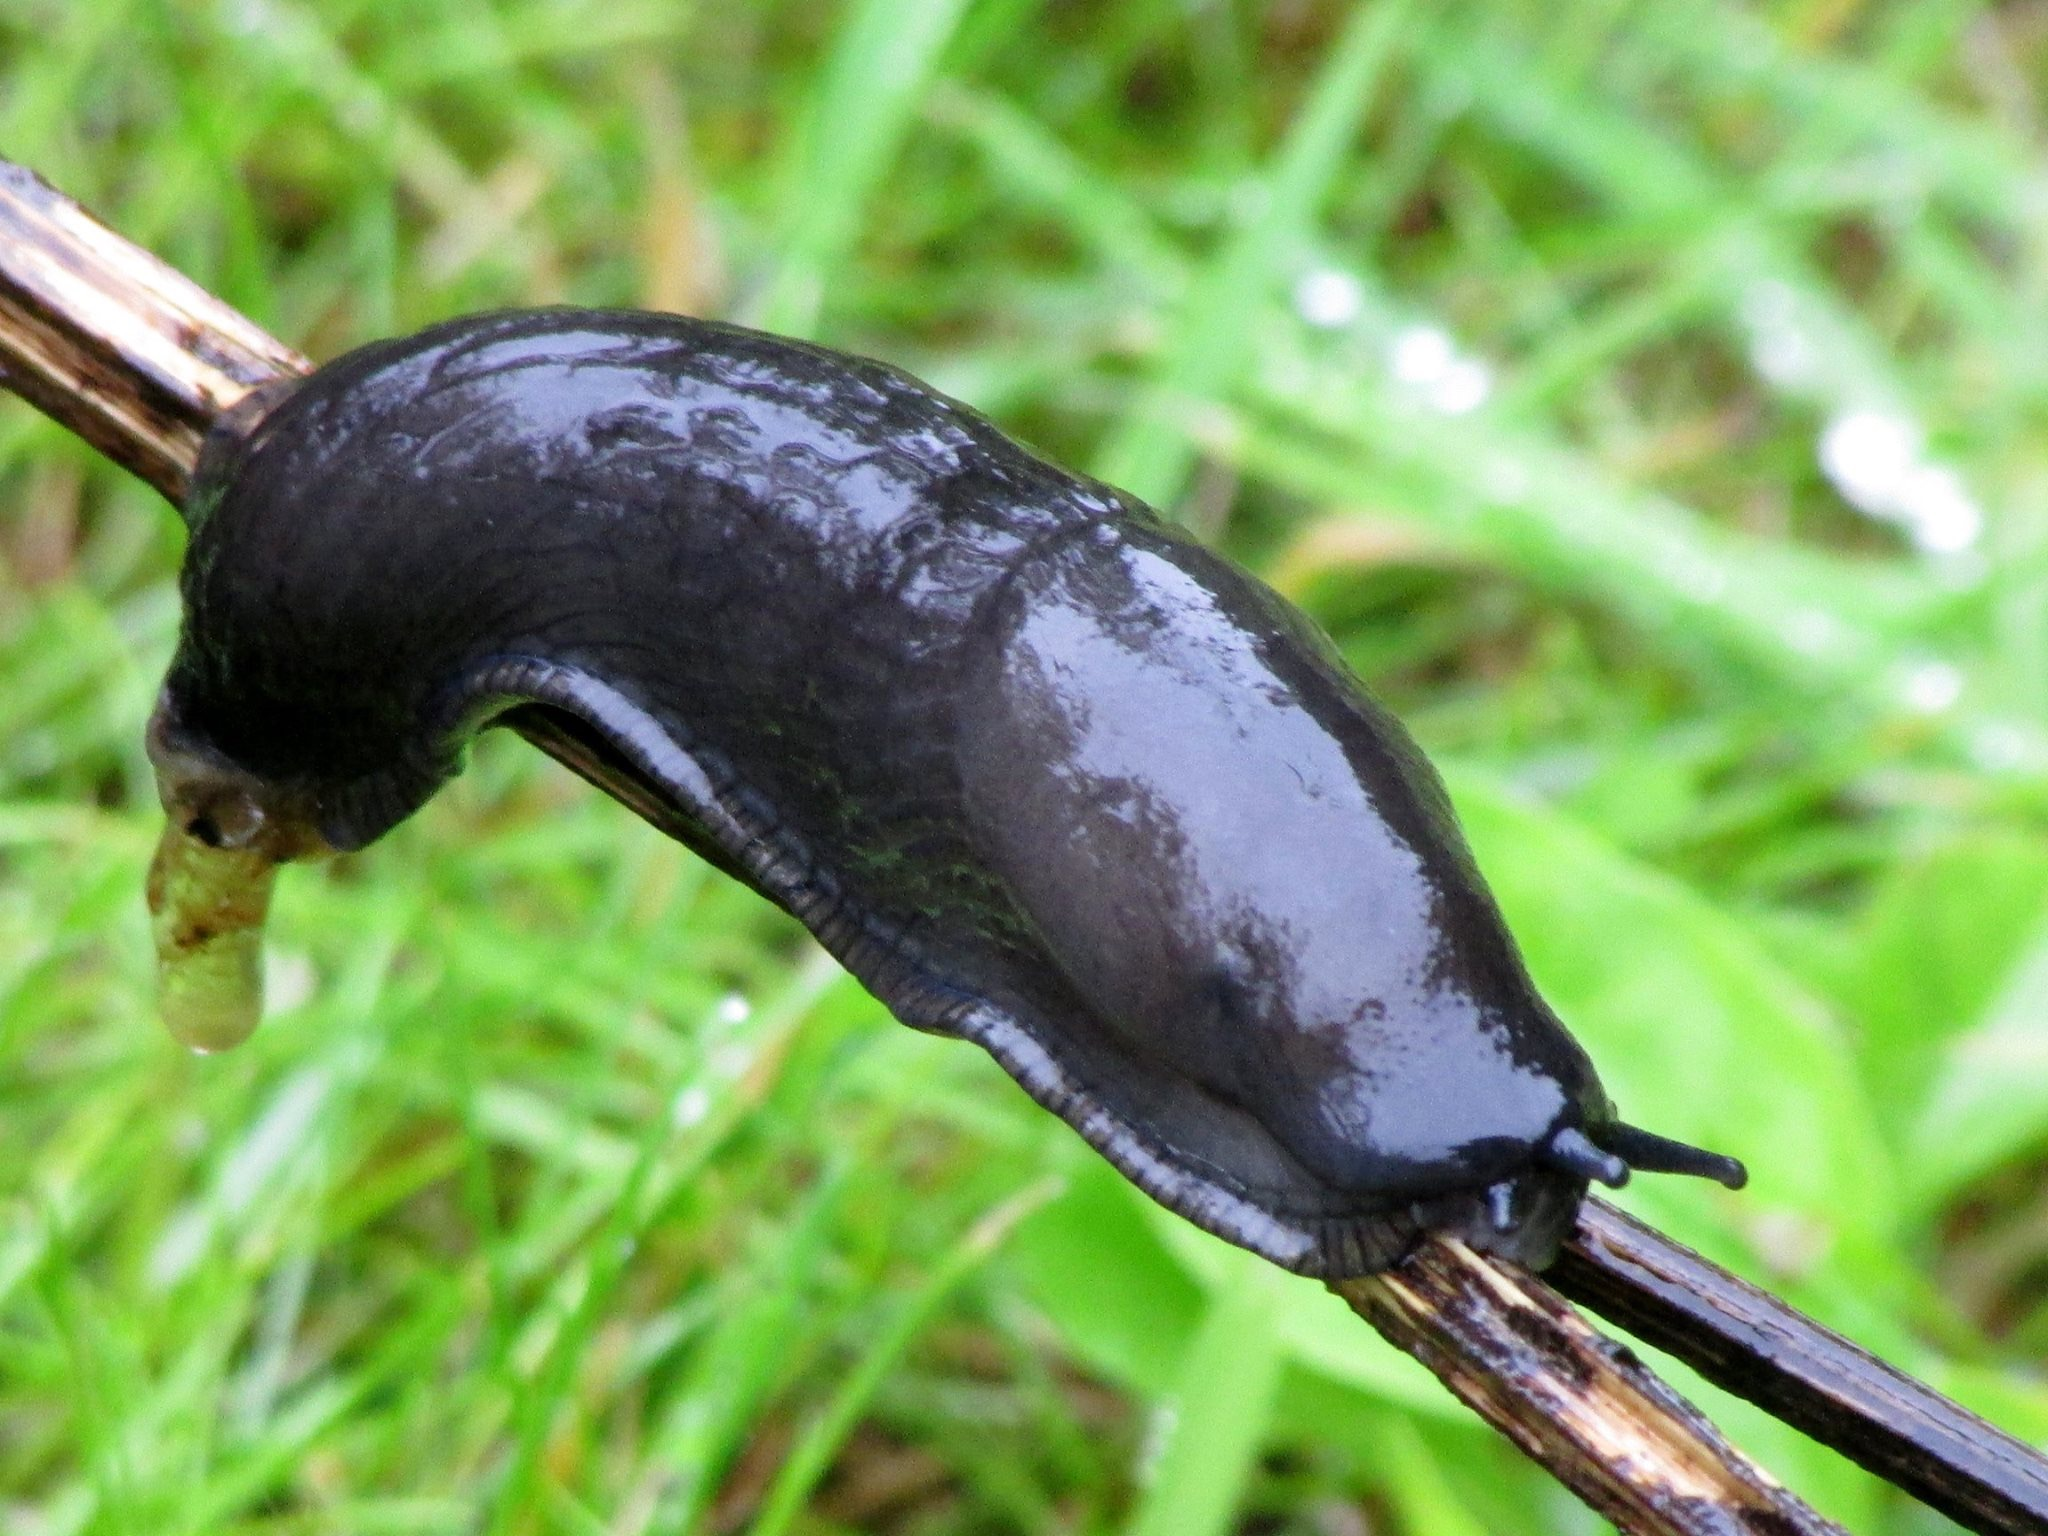 Perfect weather for slugs